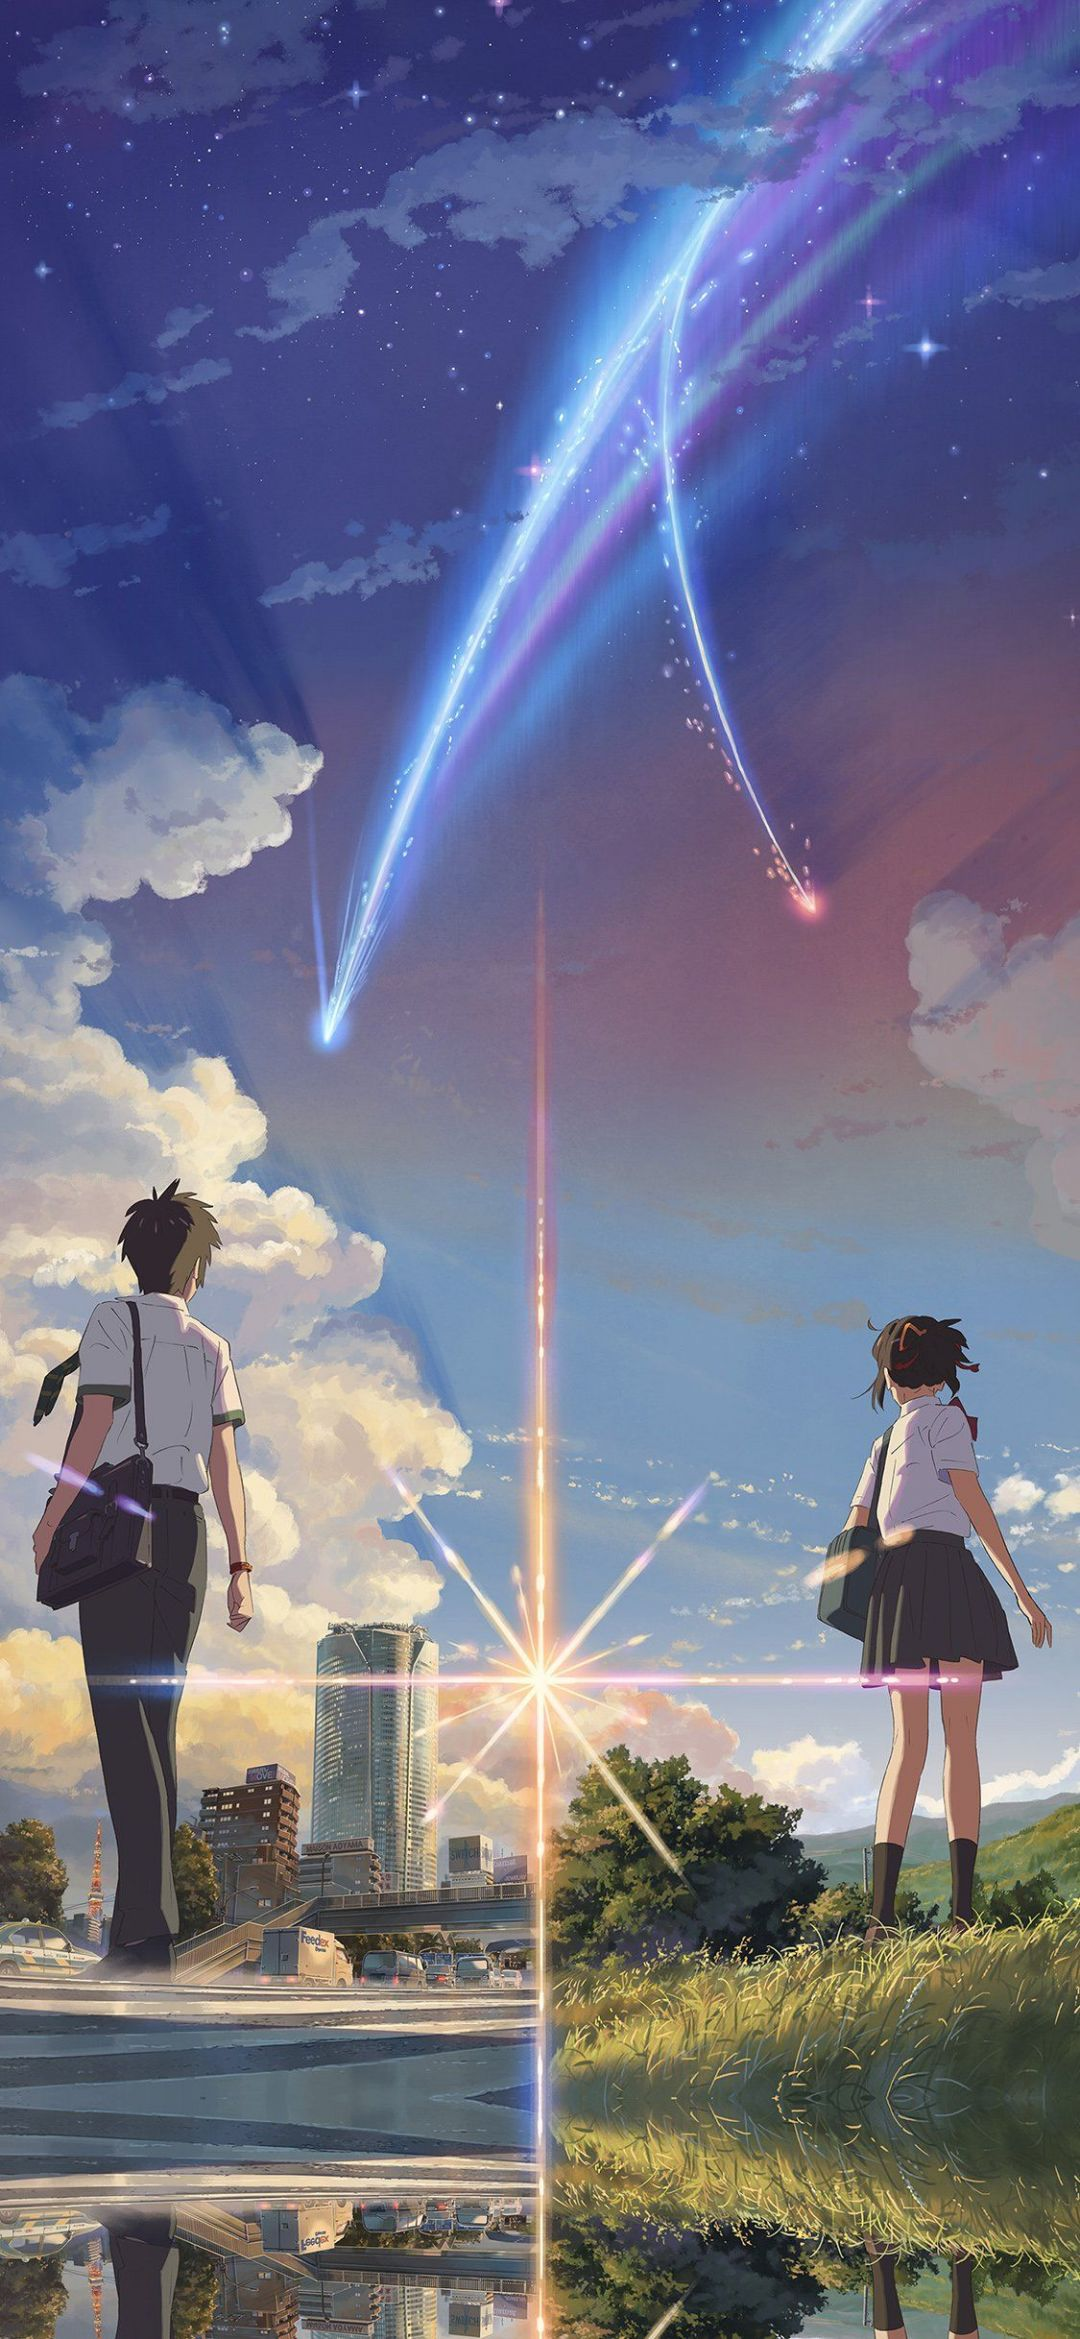 Your Name Anime - Your Name Anime Wallpaper Mobile , HD Wallpaper & Backgrounds